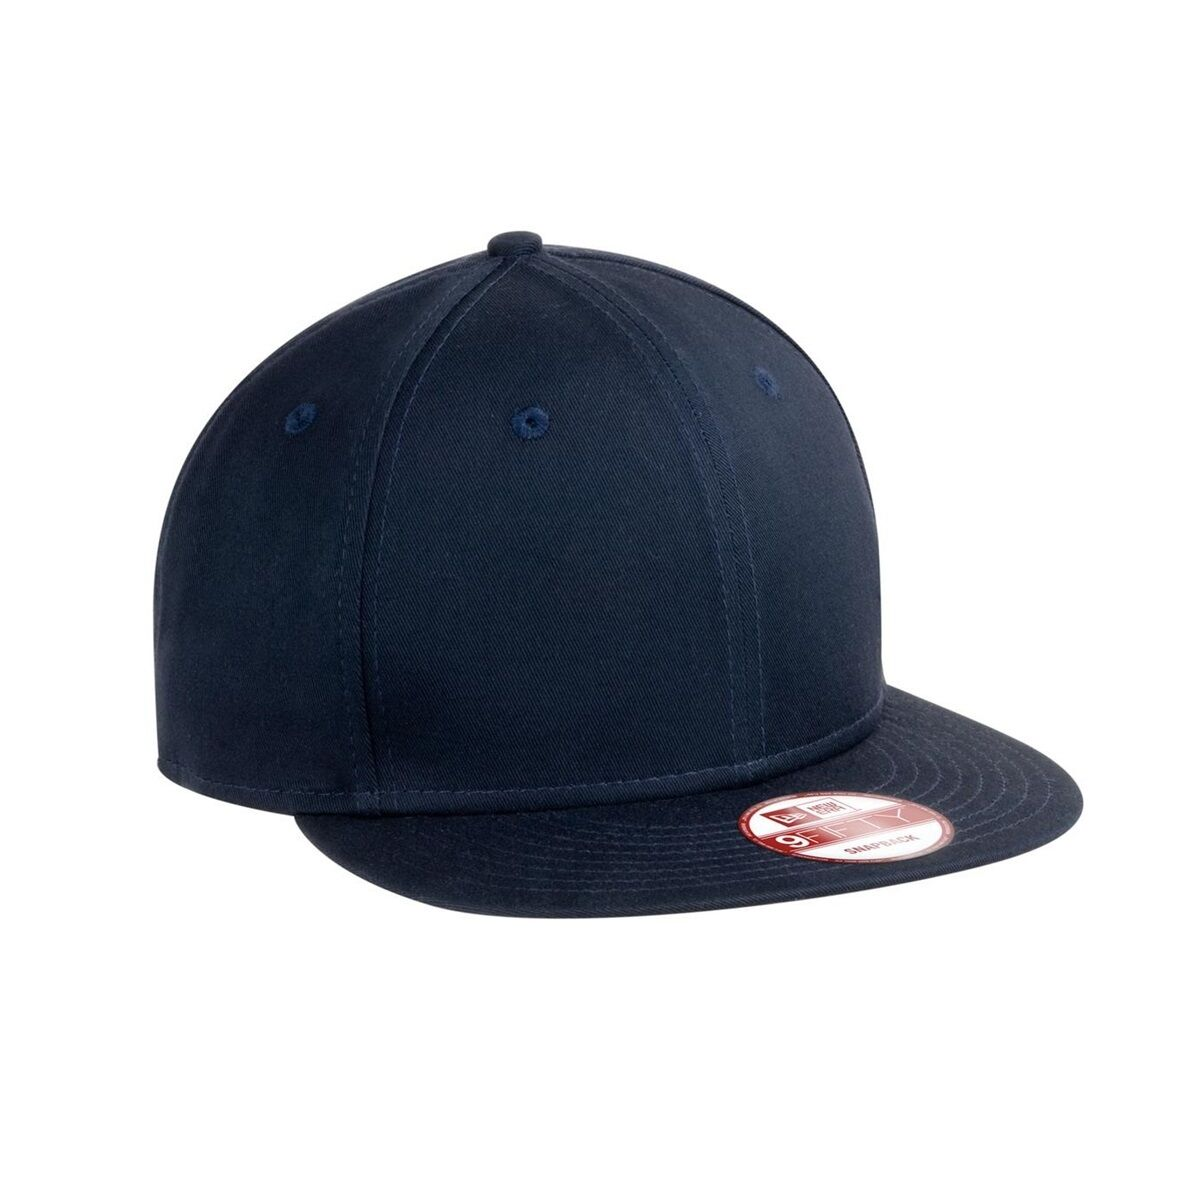 12 Custom Logo New Era NE400 9 Fifty Hat Flat Bill Snap Back Hat Fifty Cap   Hats f48fd7